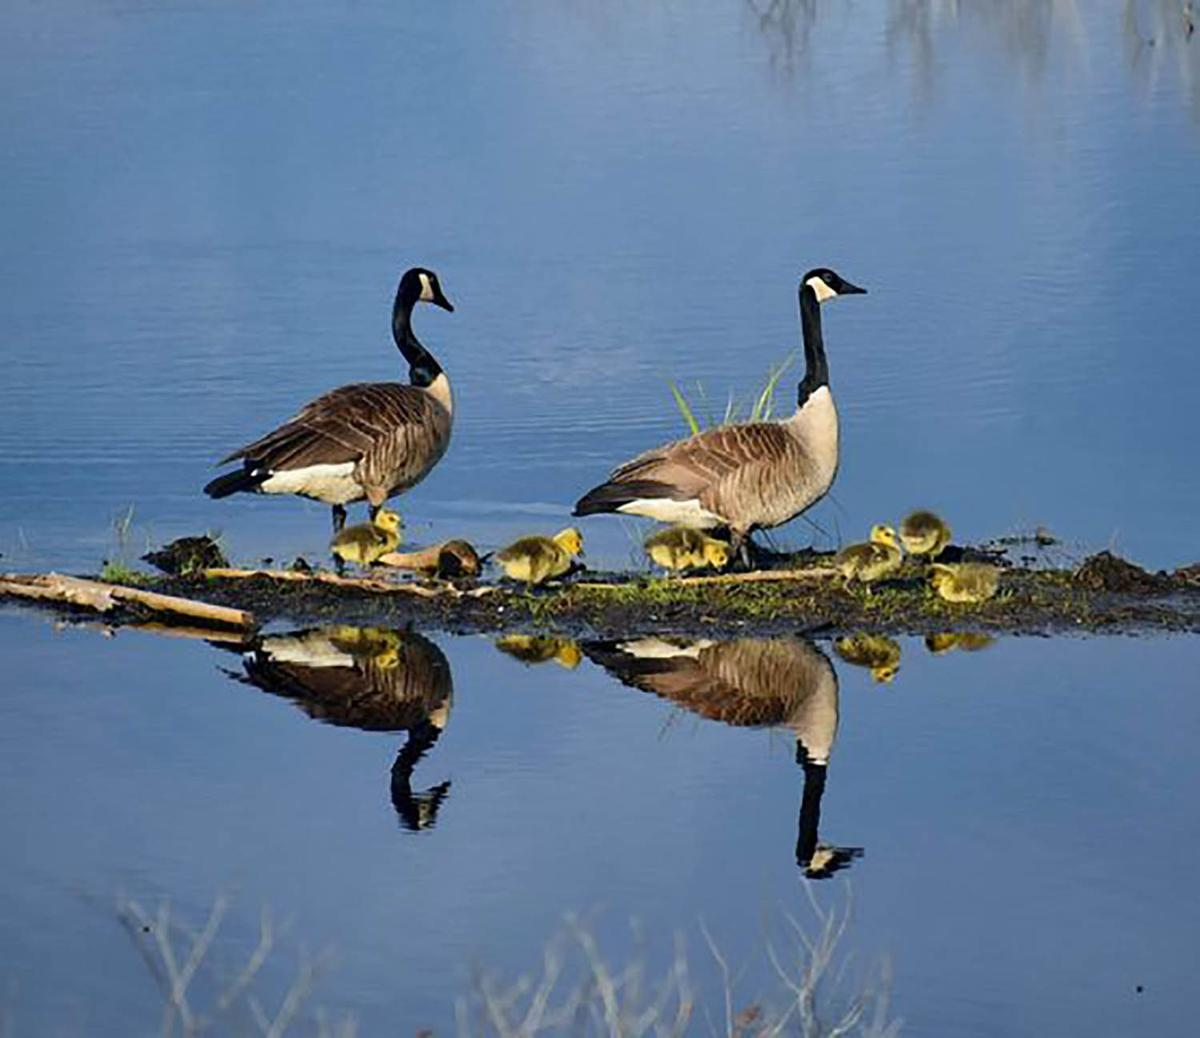 20210518-MAG-goose family 2